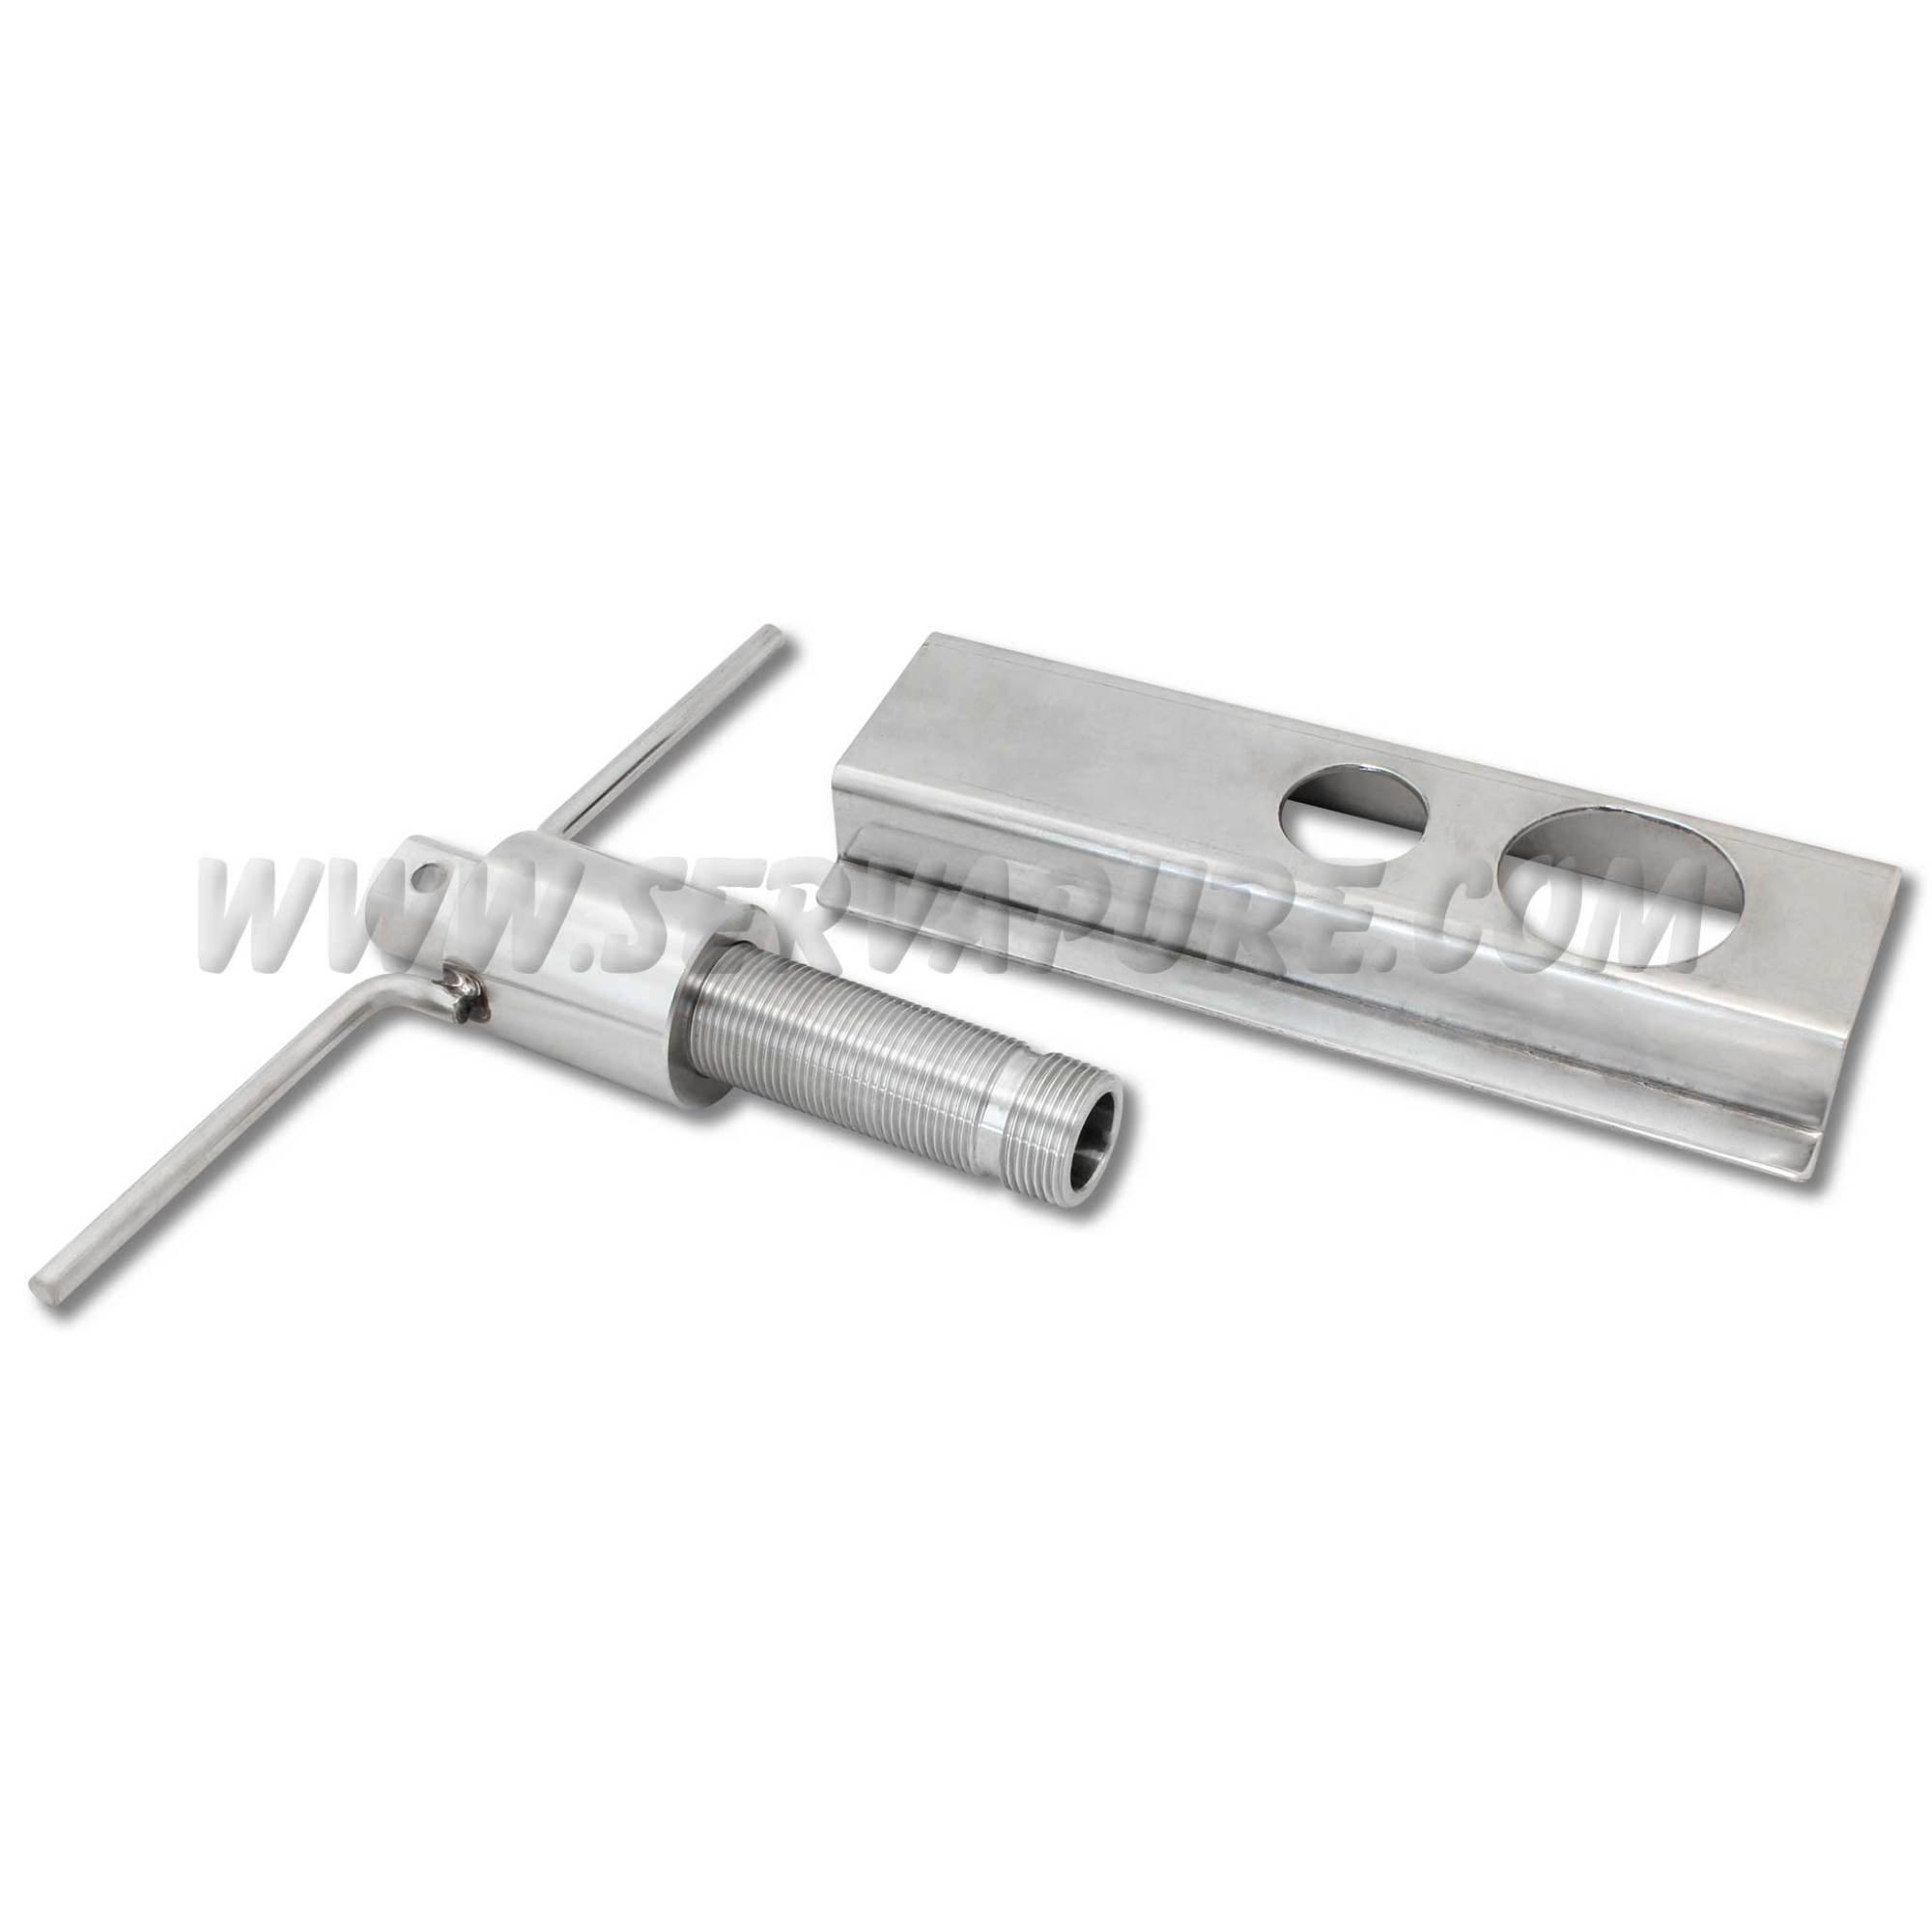 hight resolution of codeline 94101 end cap removal tool for codeline pressure vessels serv a pure